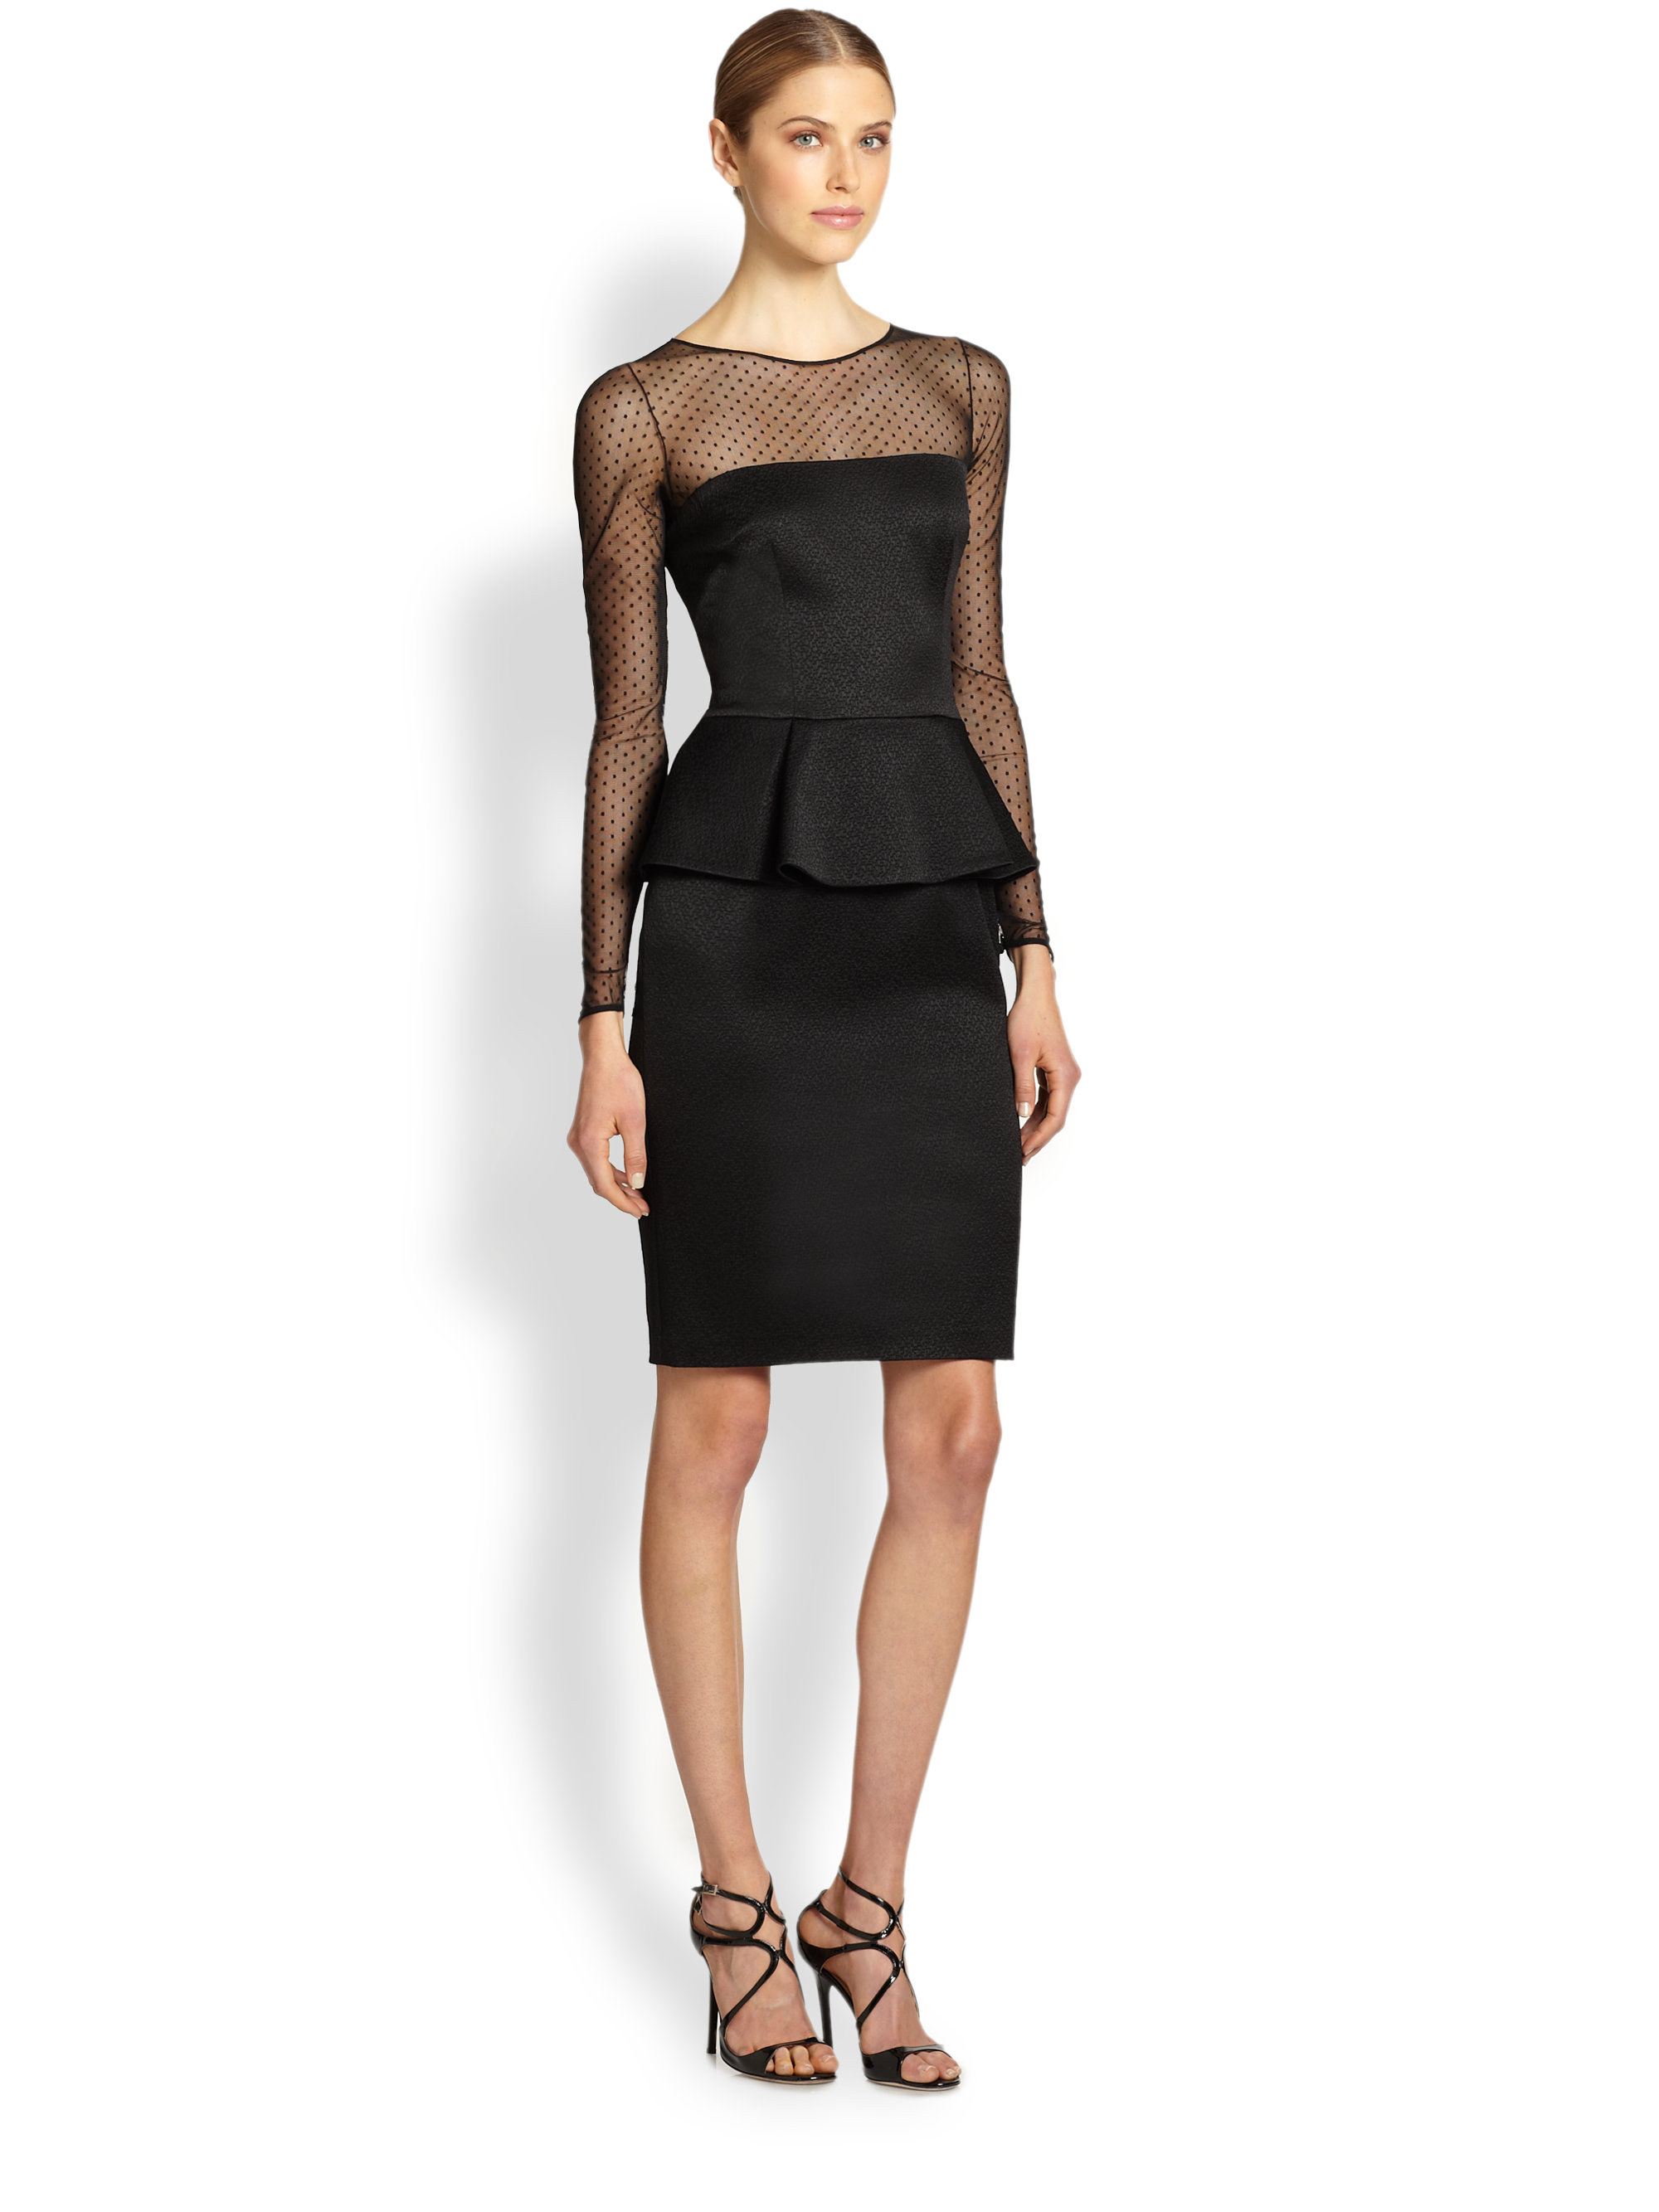 Find peplum long dress at ShopStyle. Shop the latest collection of peplum long dress from the most popular stores - all in one place.